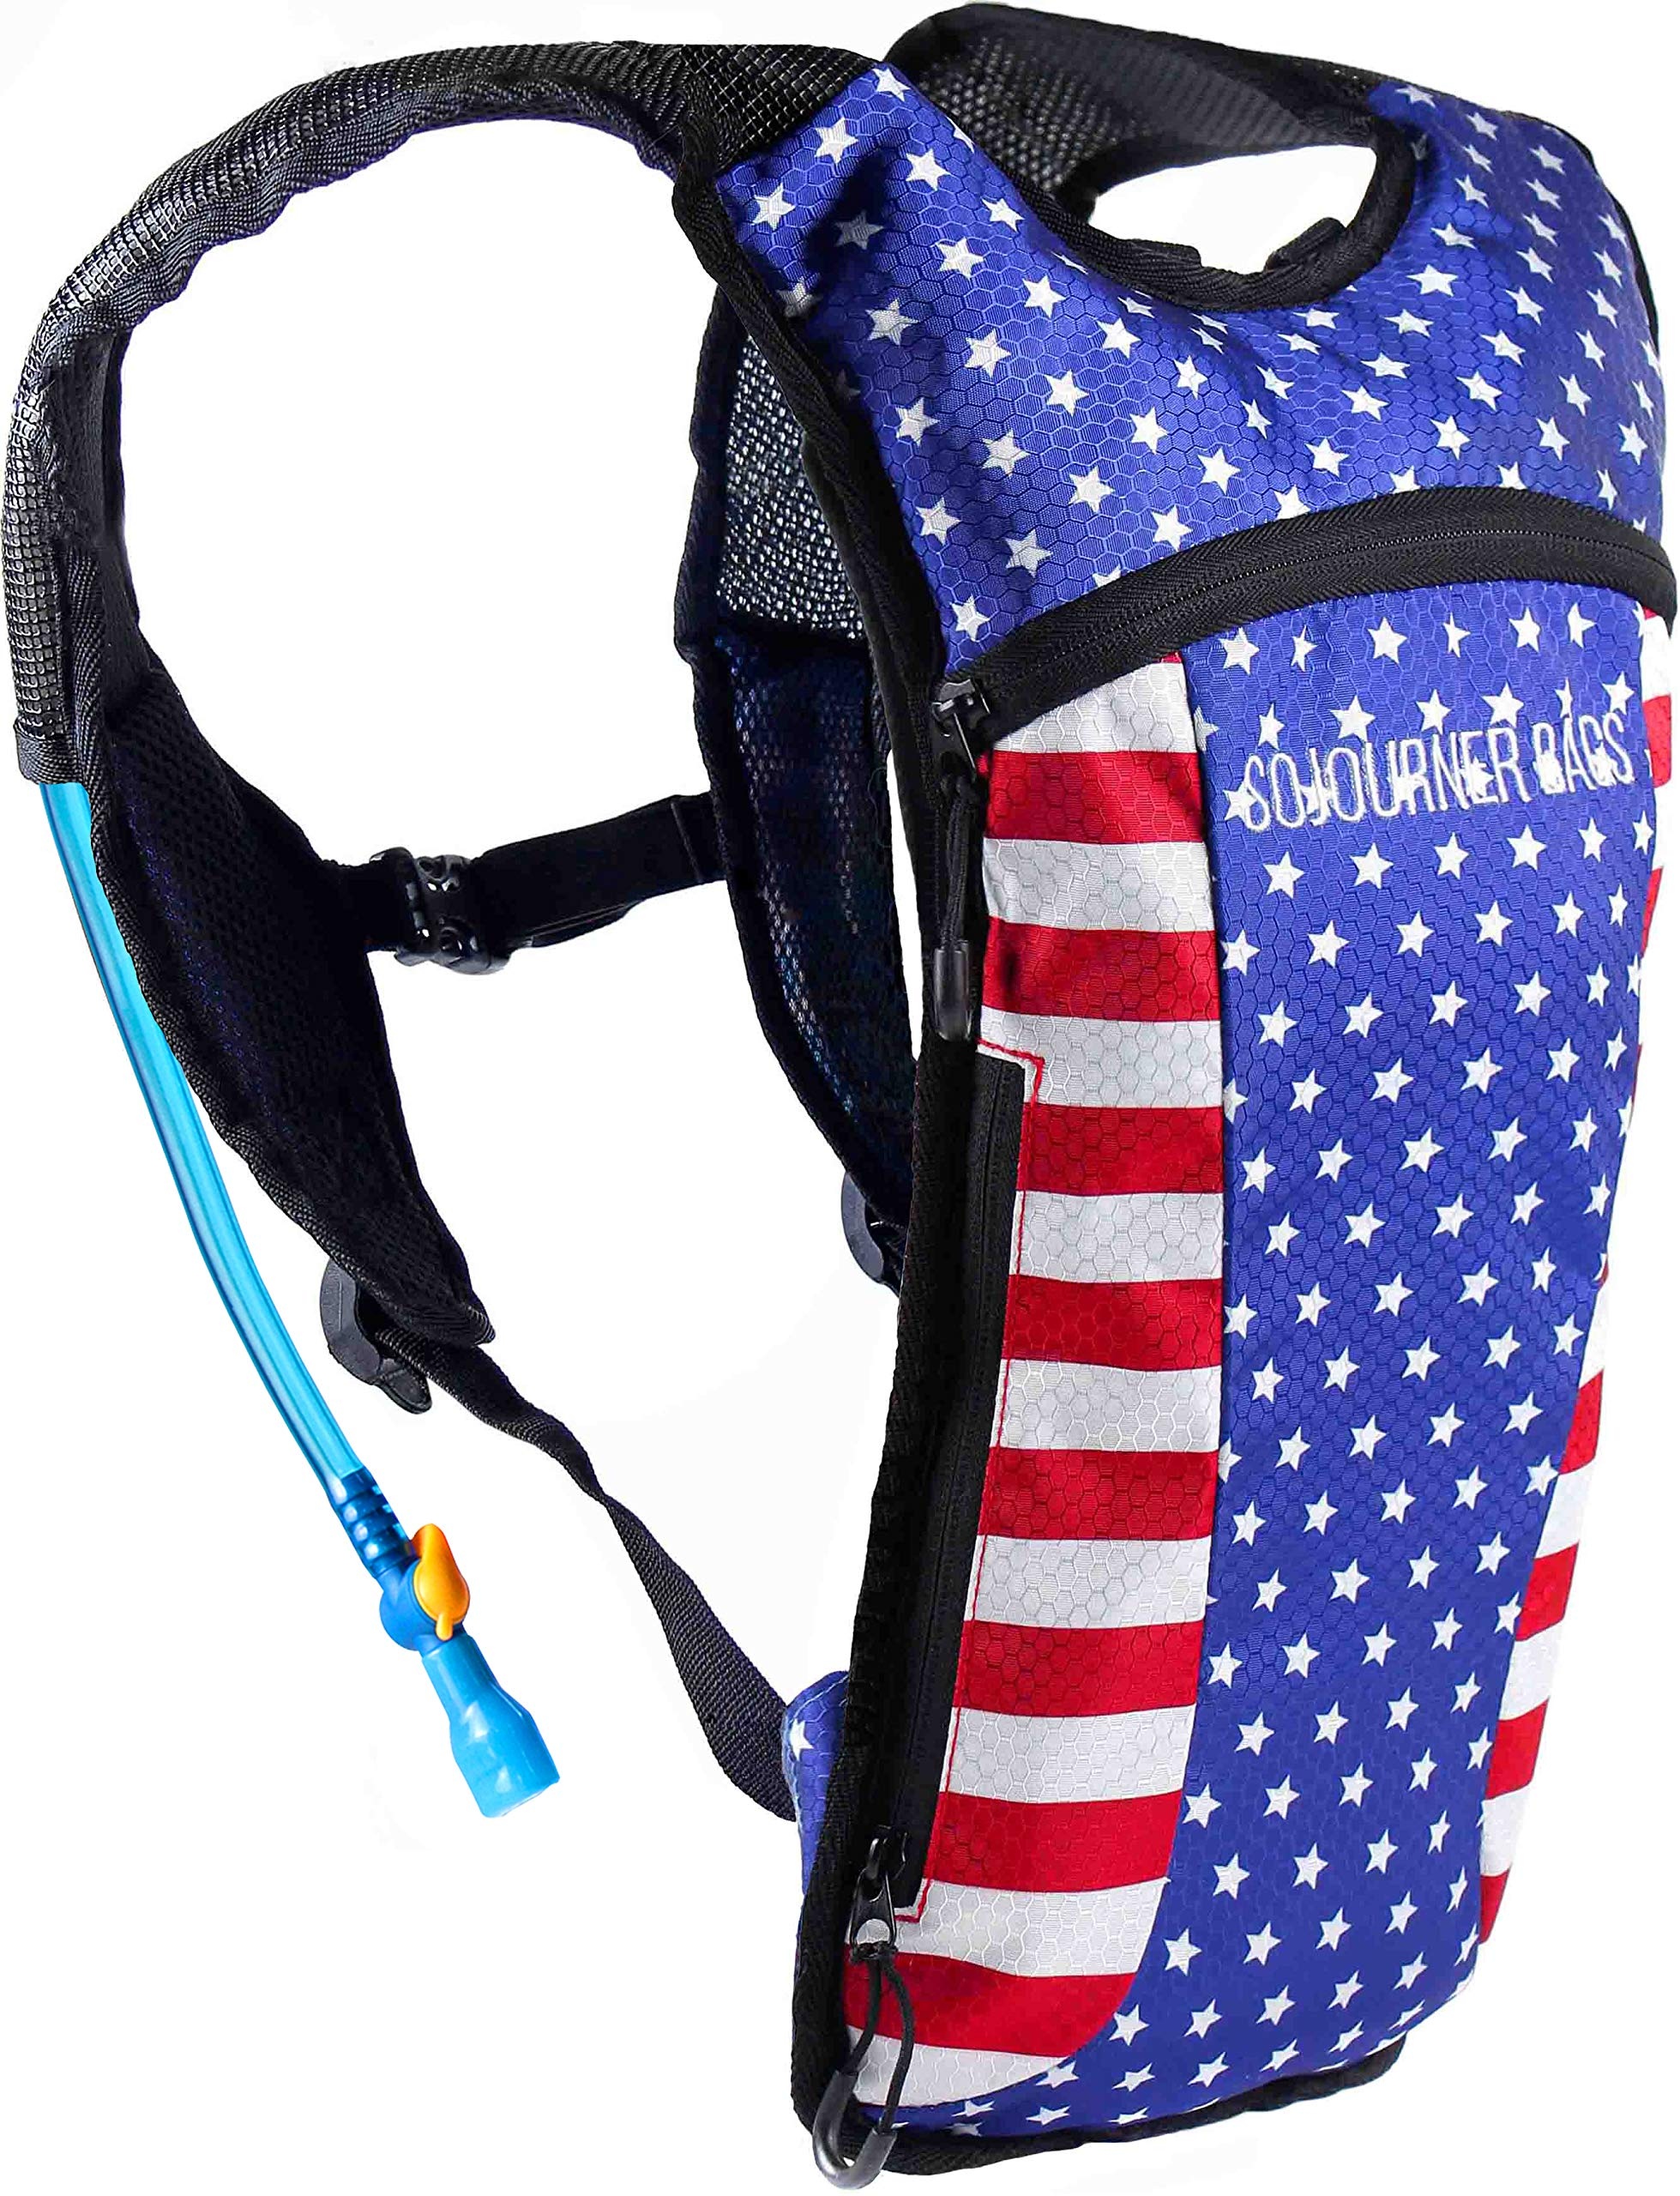 Sojourner Hydration Pack Backpack - 2L Water Bladder Included for Festivals, Raves, Hiking, Biking, Climbing, Running and More (USA - American Flag) by SoJourner Bags